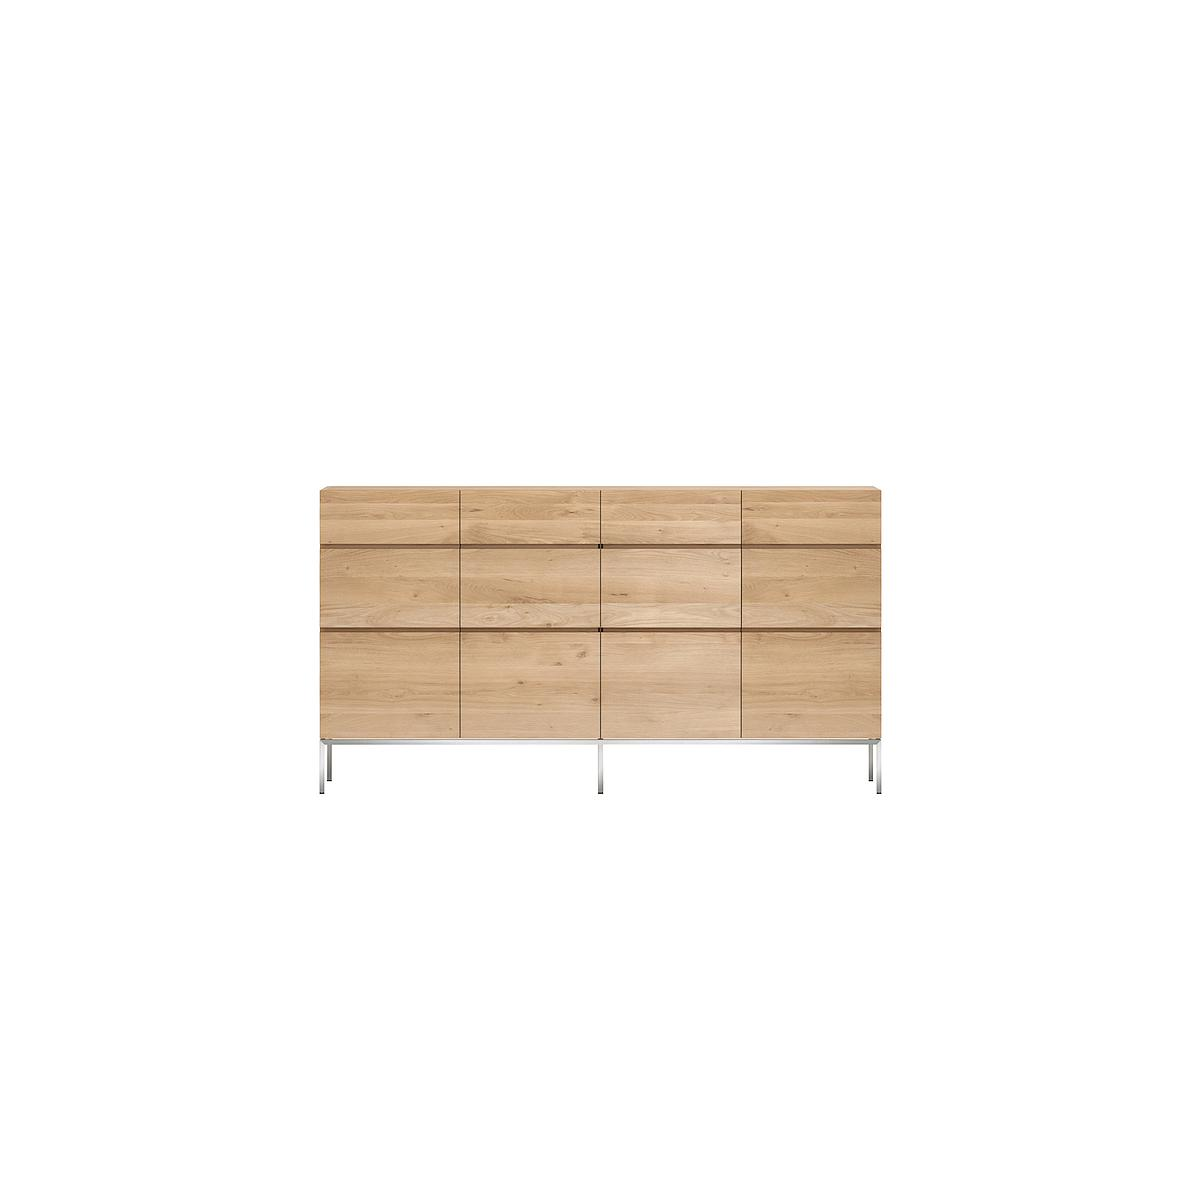 LIGNA by Ethnicraft Dressoir